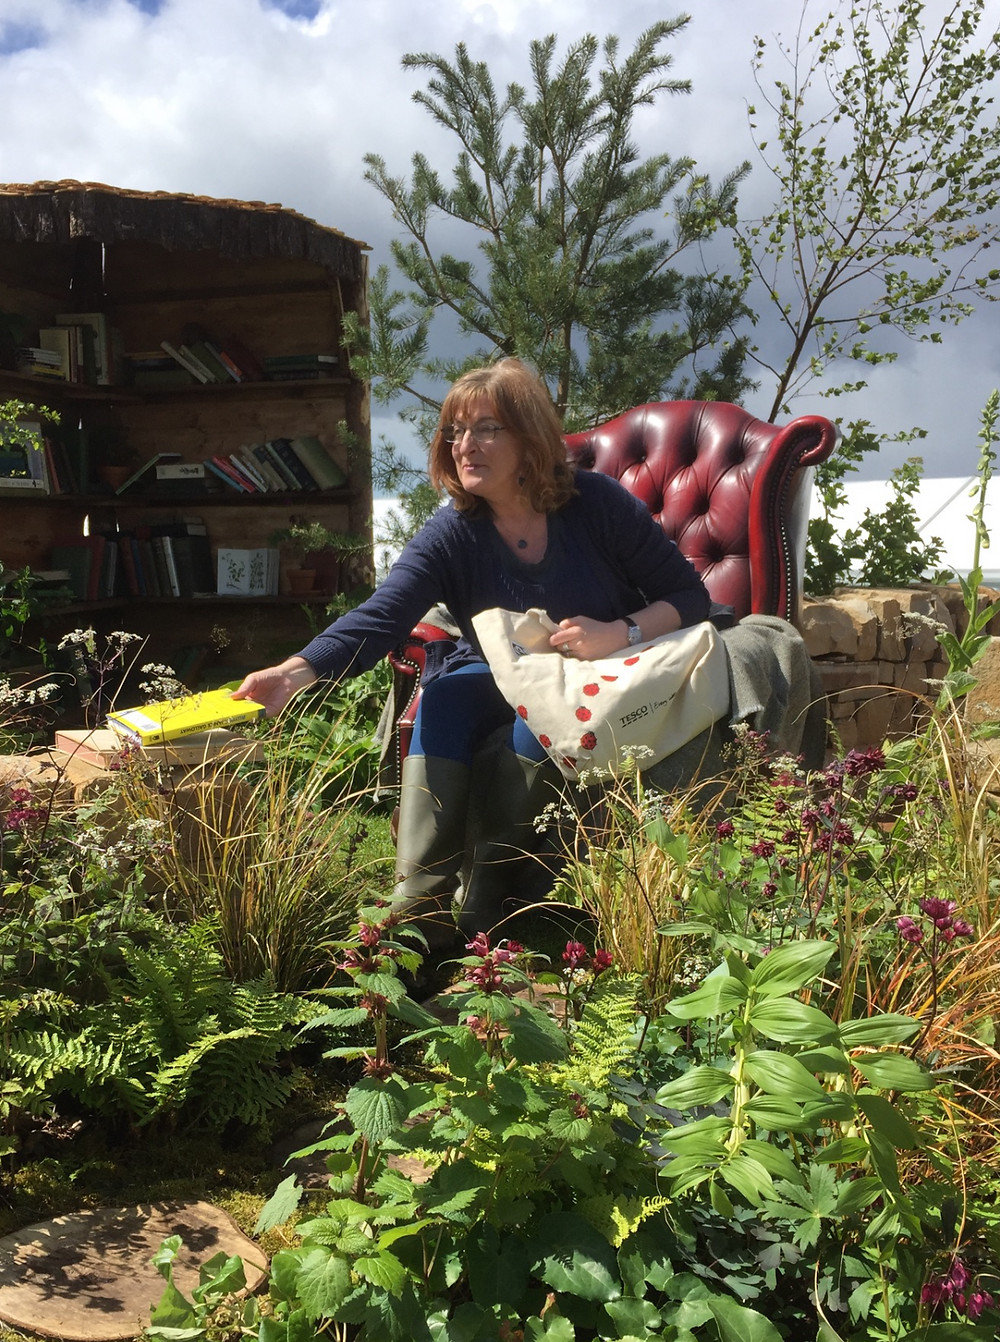 Janice reading in the garden